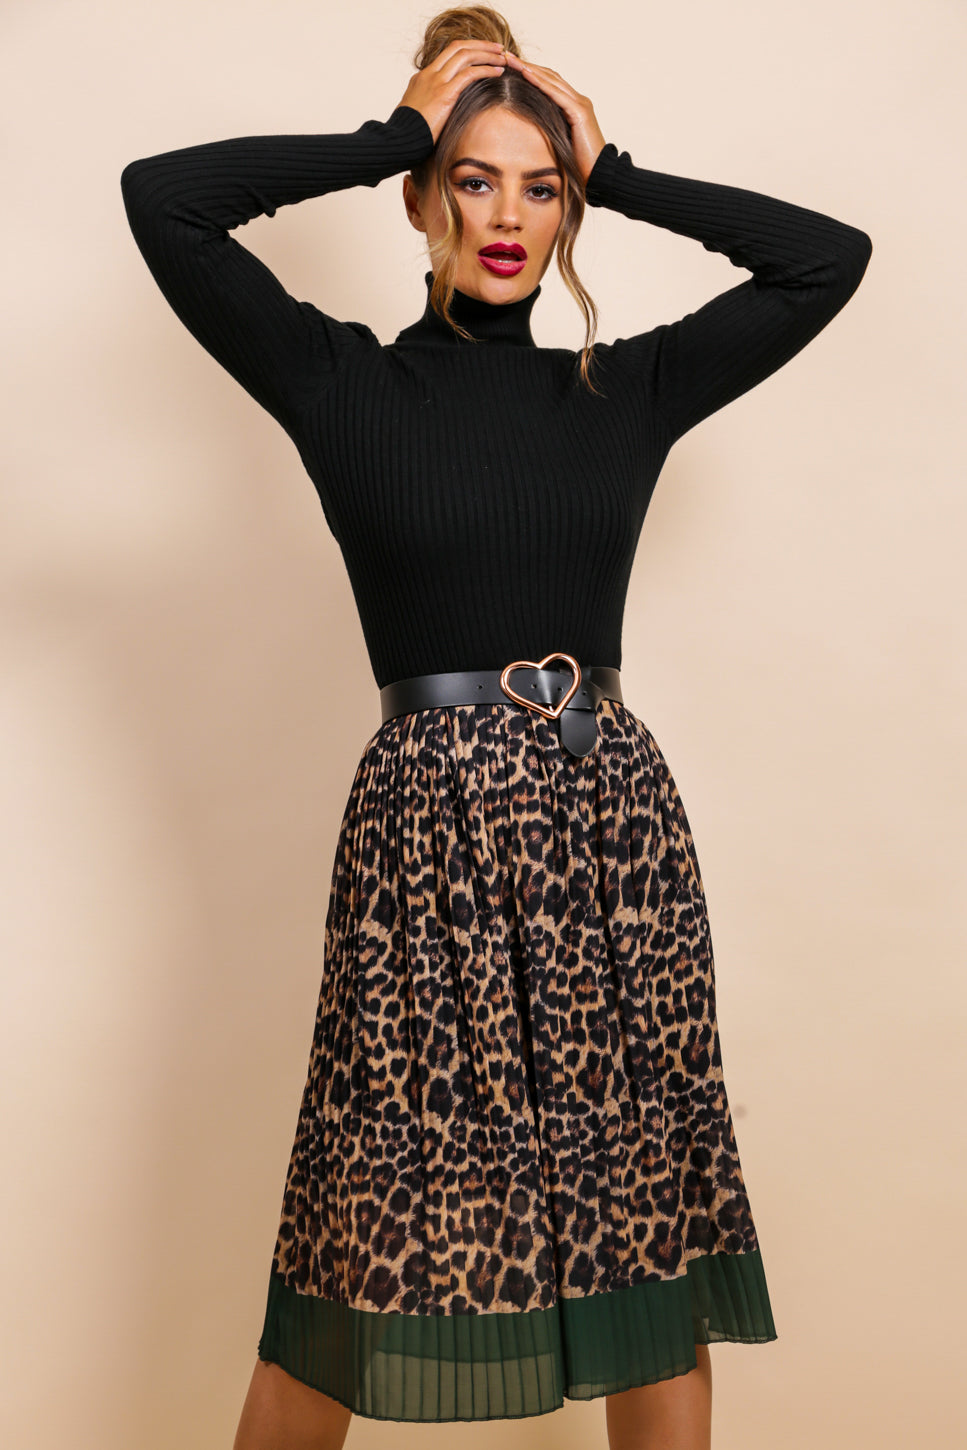 One Day At A Line - Midi Skirt In LEOPARD/GREEN